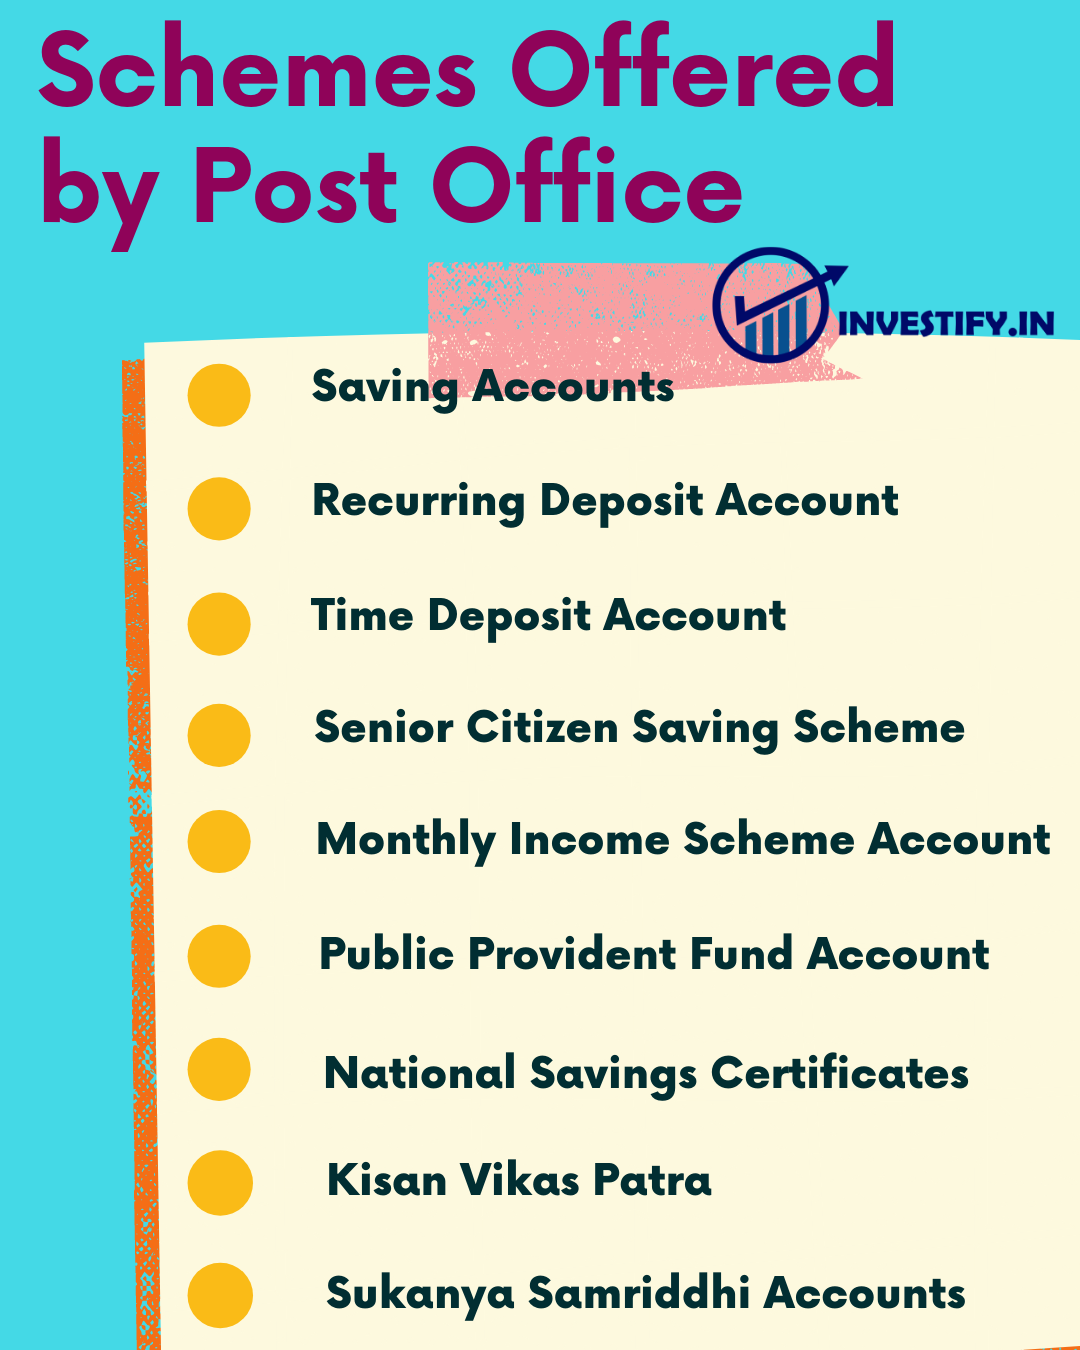 Types of schemes offered by Post office